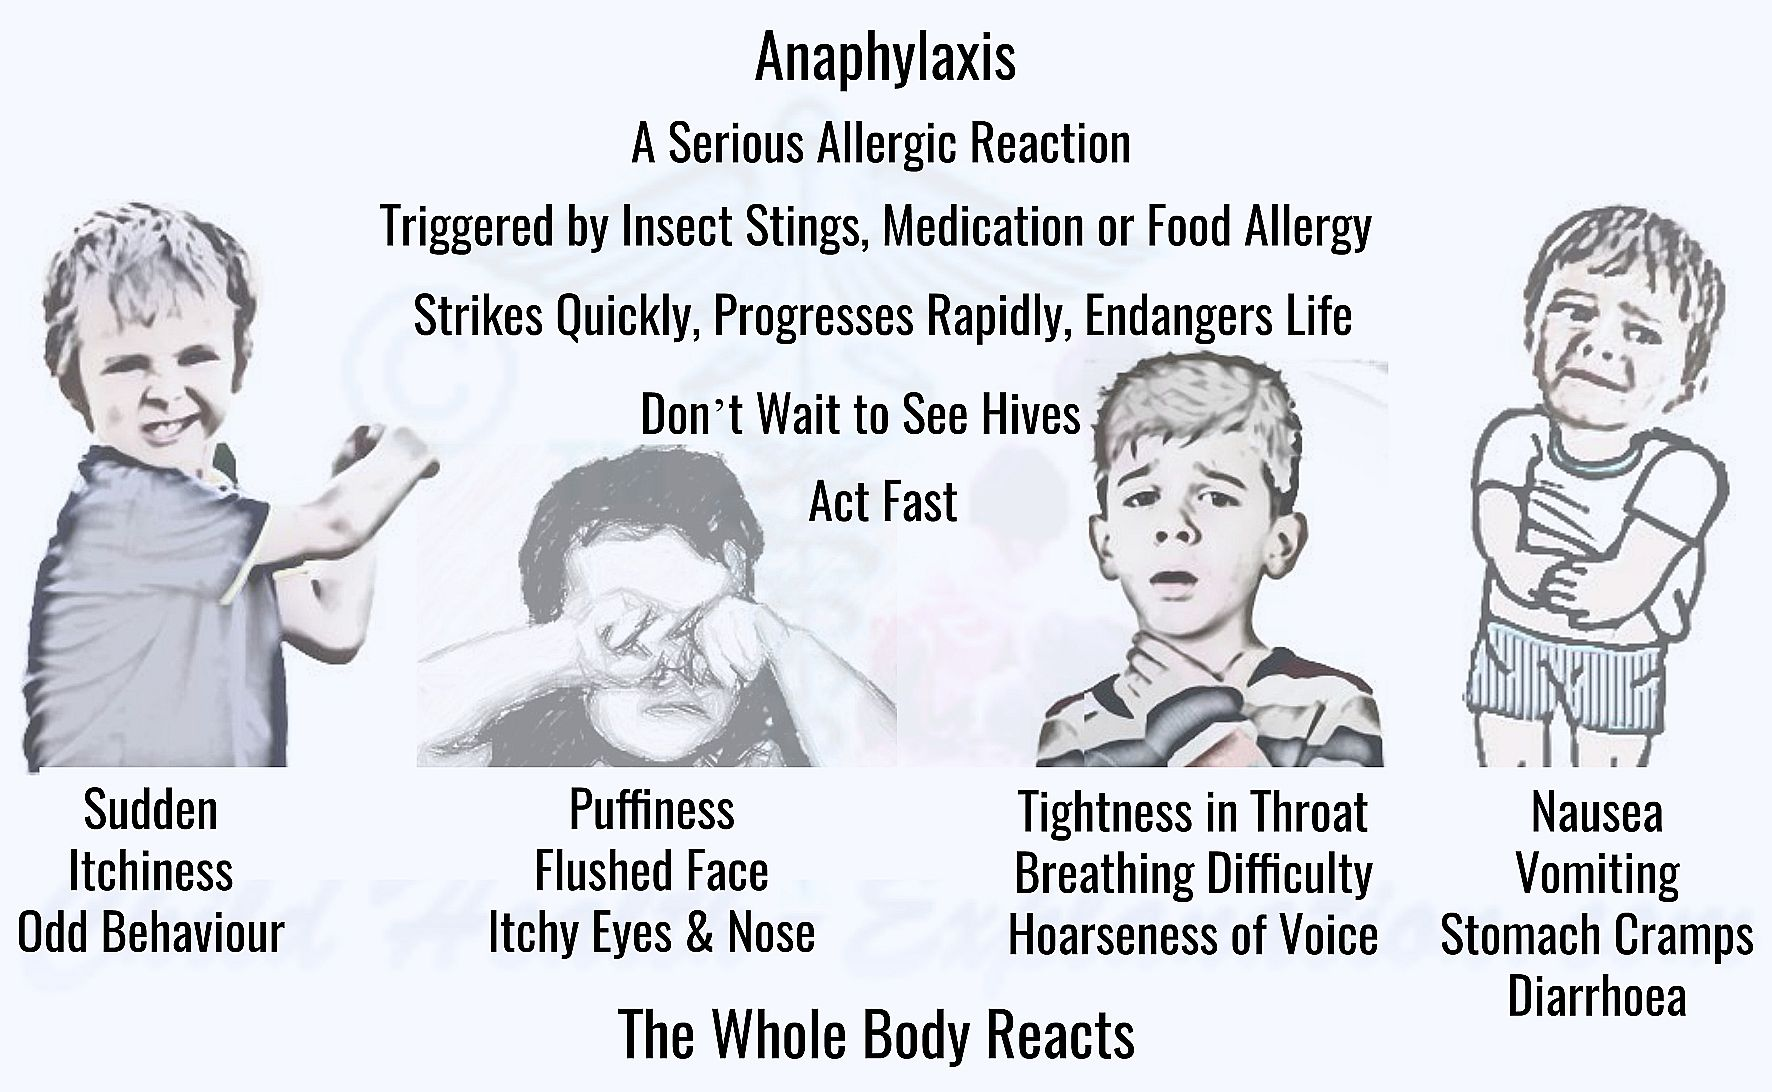 Recognize FAST: F - Face changes, A - Airway Obstruction, S - Stomach Symptoms, T - Total Body Itching and Weakness